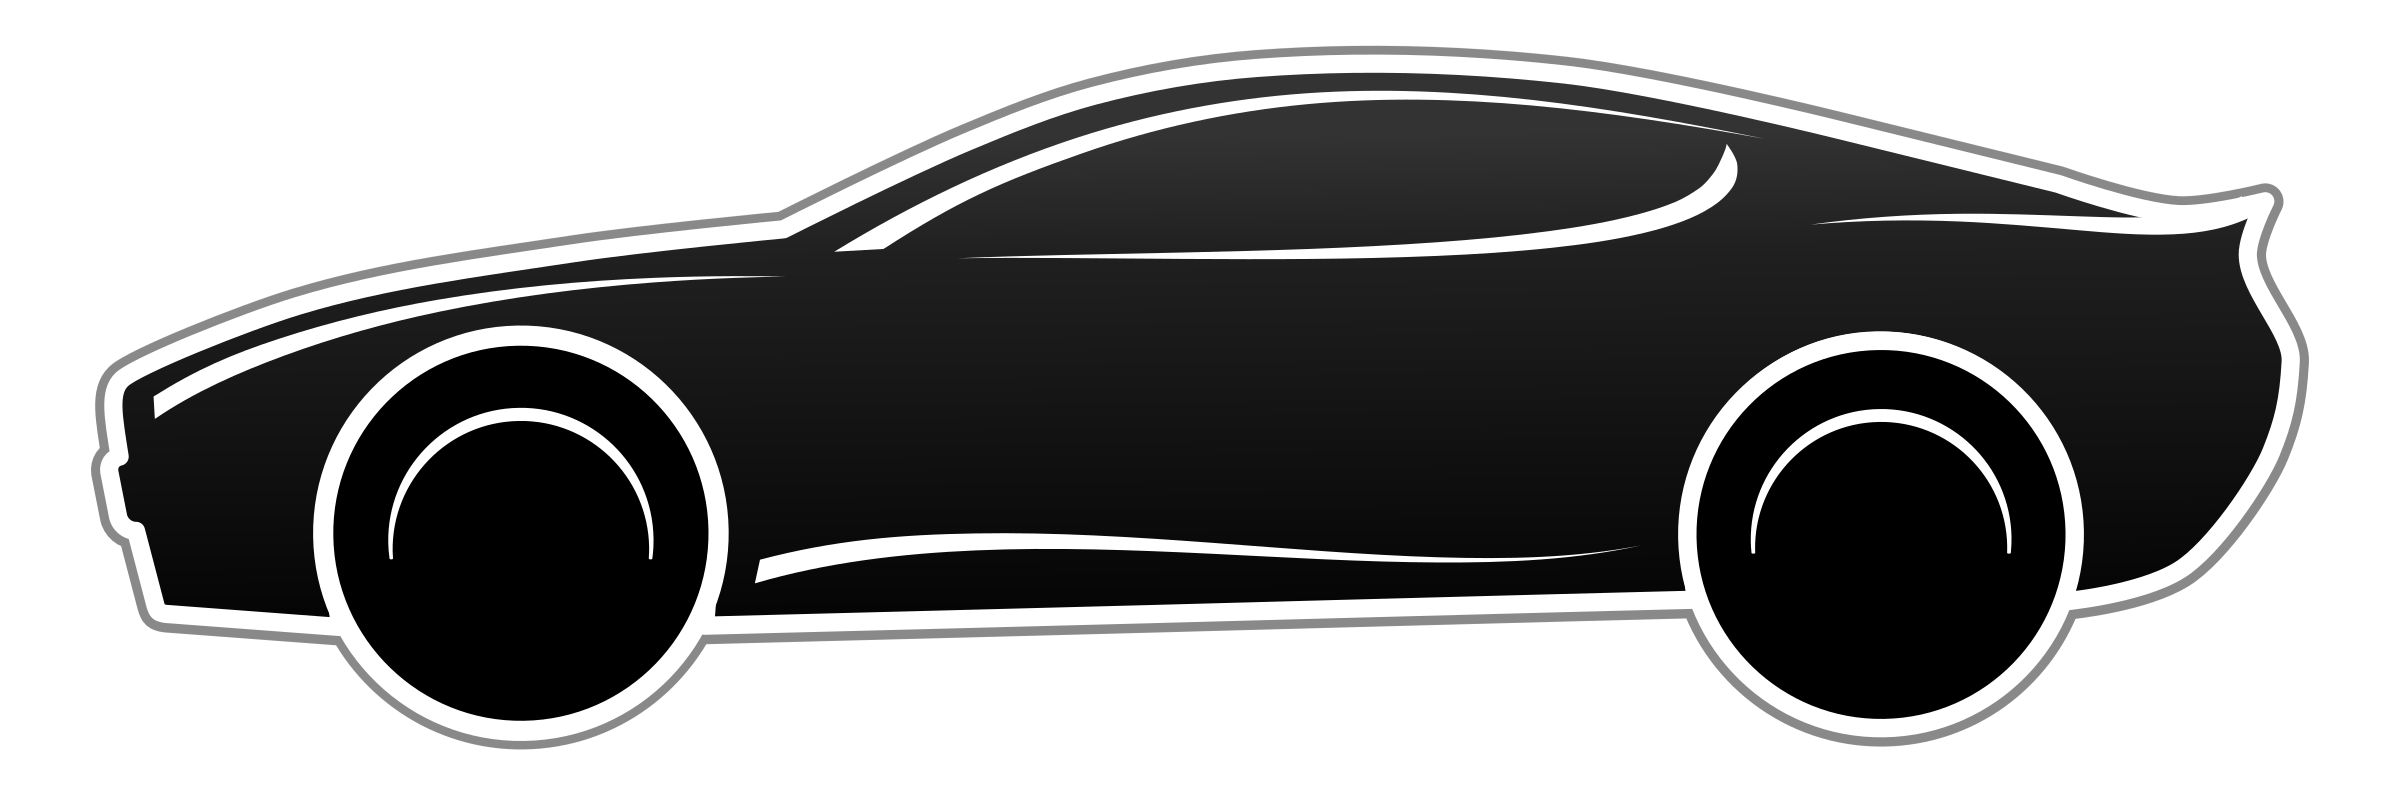 Working on car clipart graphic freeuse library Fast Car PNG Black And White Transparent Fast Car Black And White ... graphic freeuse library